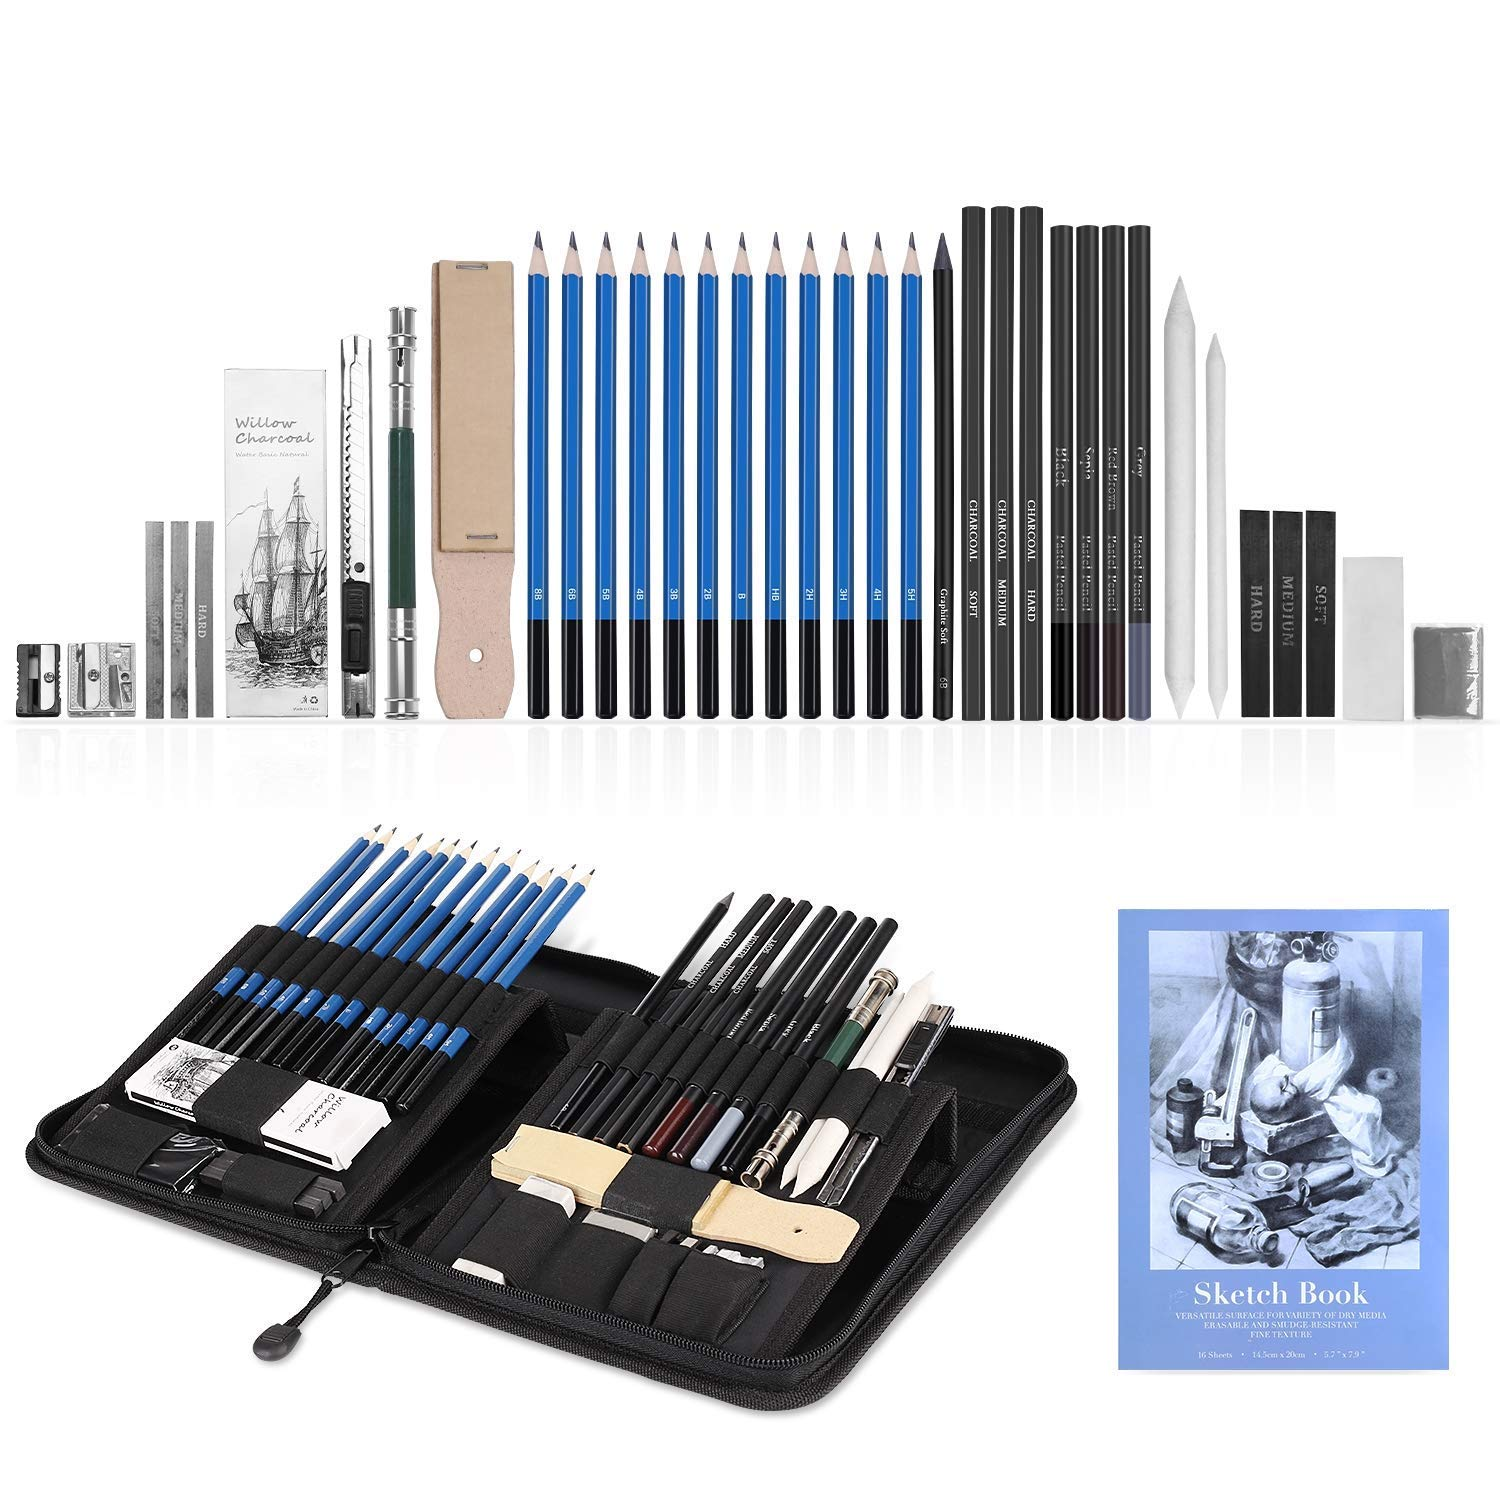 Ghb 41pcs drawing pencils sketching set graphite charcoal pencils art supplies with pop up stand erasers zippered carry case sketch book